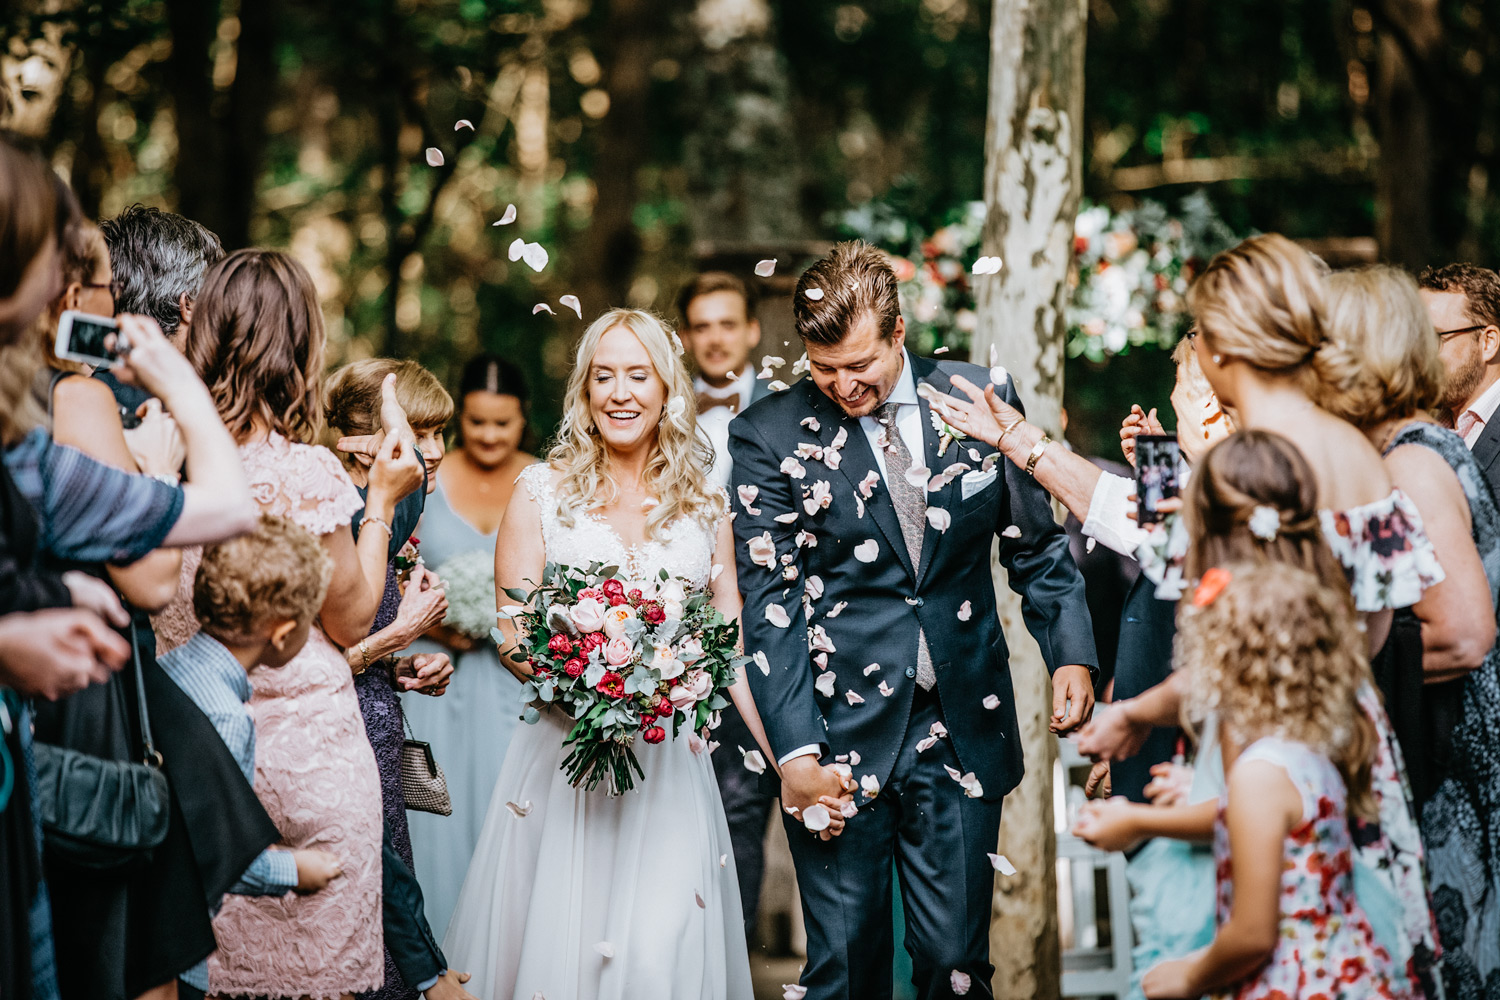 True-North-Photography-Confetti-Boomerang-Farm-wedding.jpg